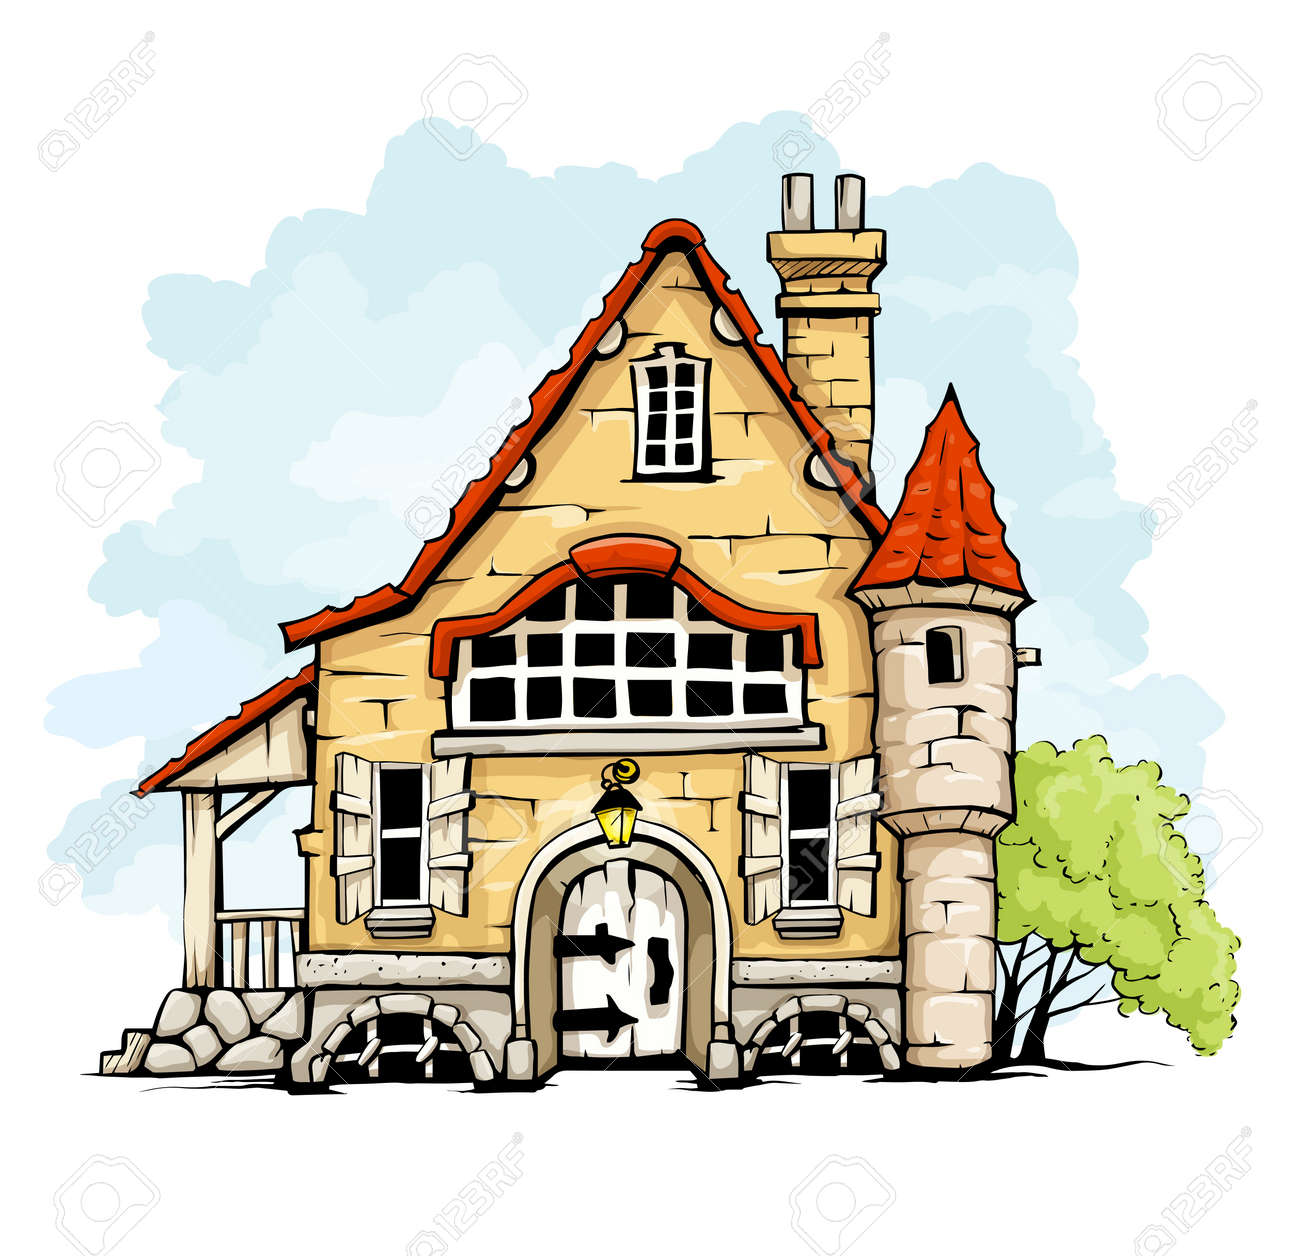 fairytale old house in retro style vector illustration isolated on white background Stock Vector - 16890148